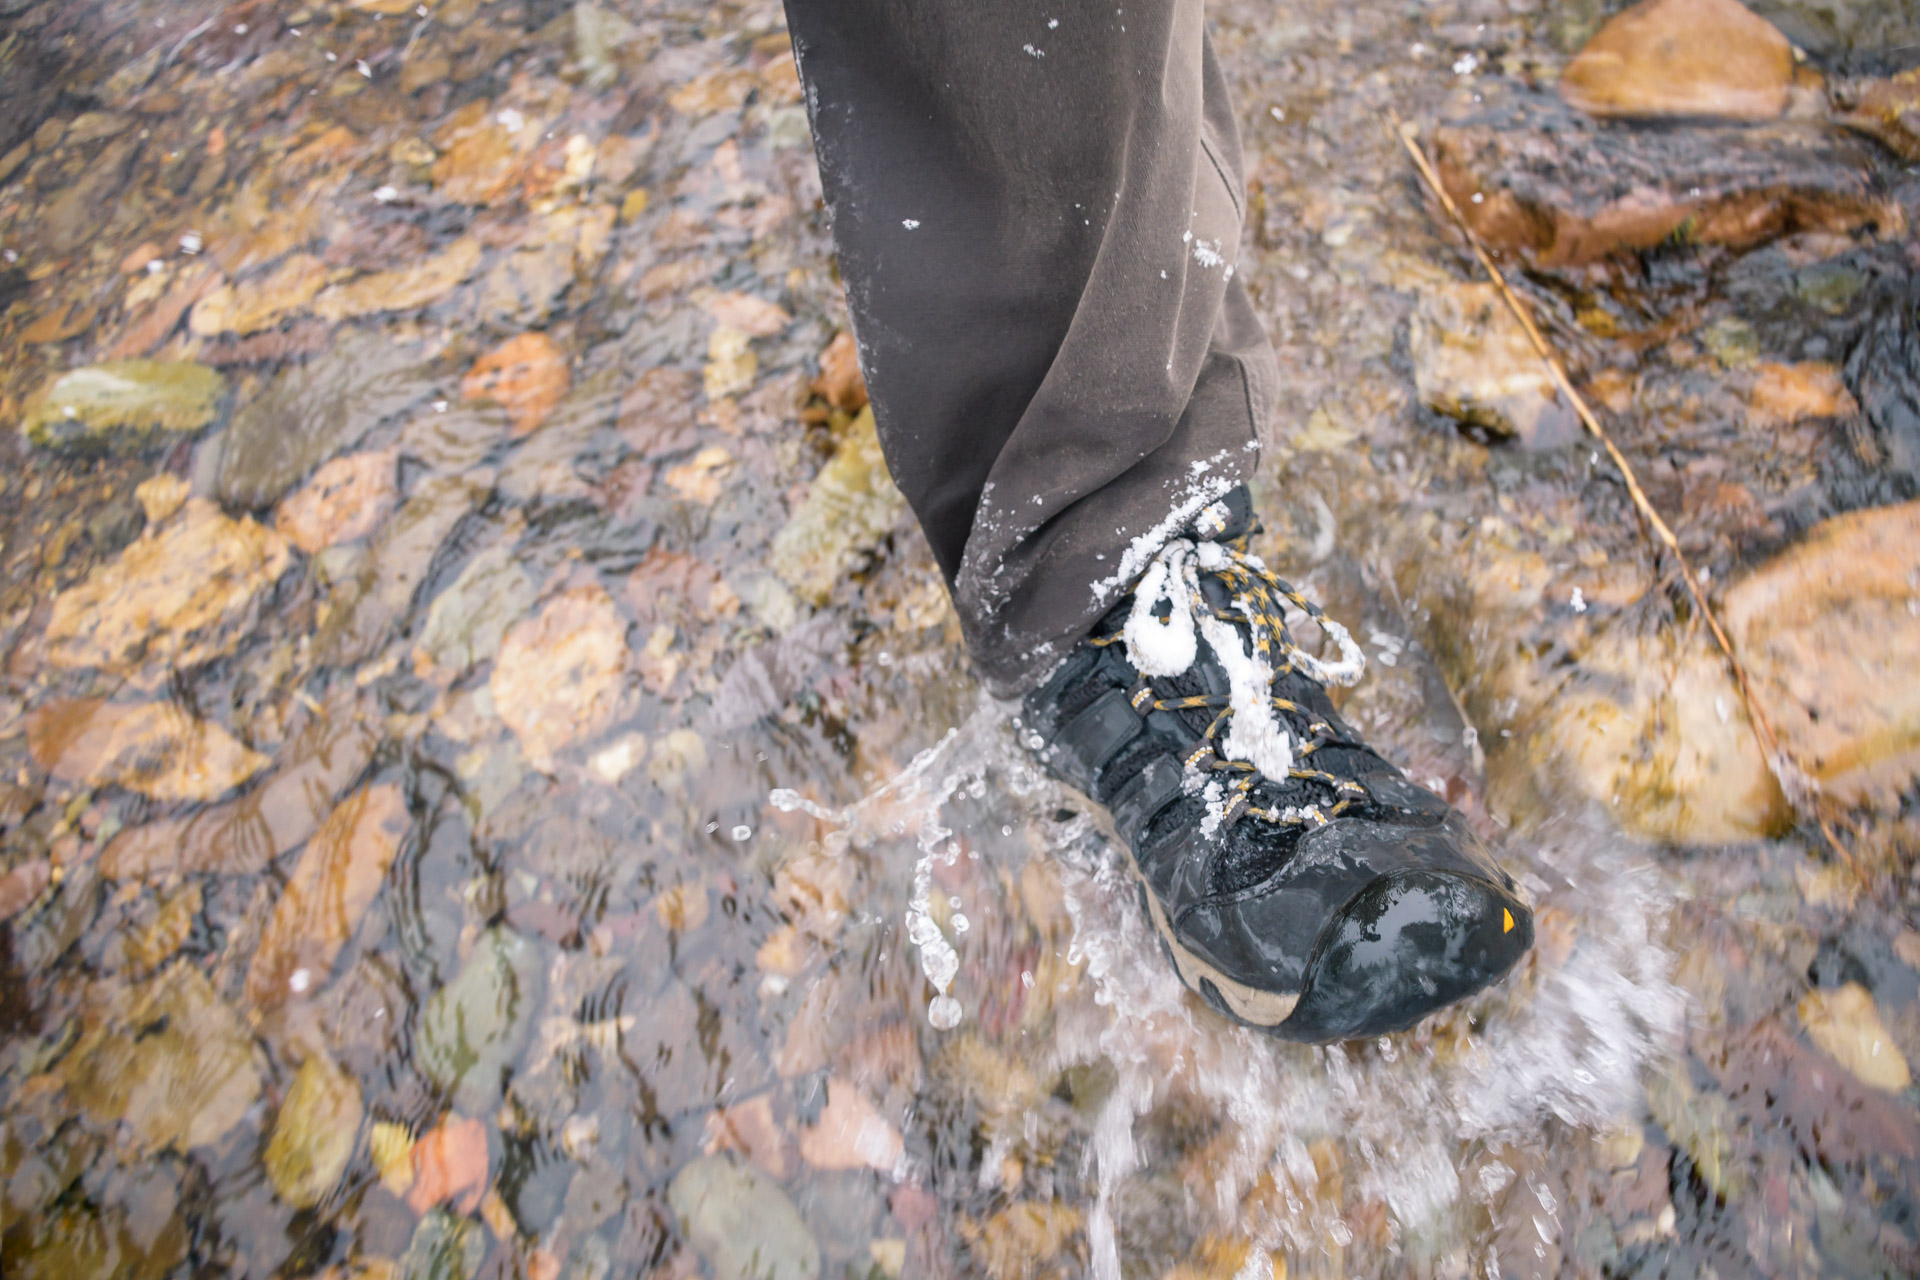 Waterproof boots...you betcha!